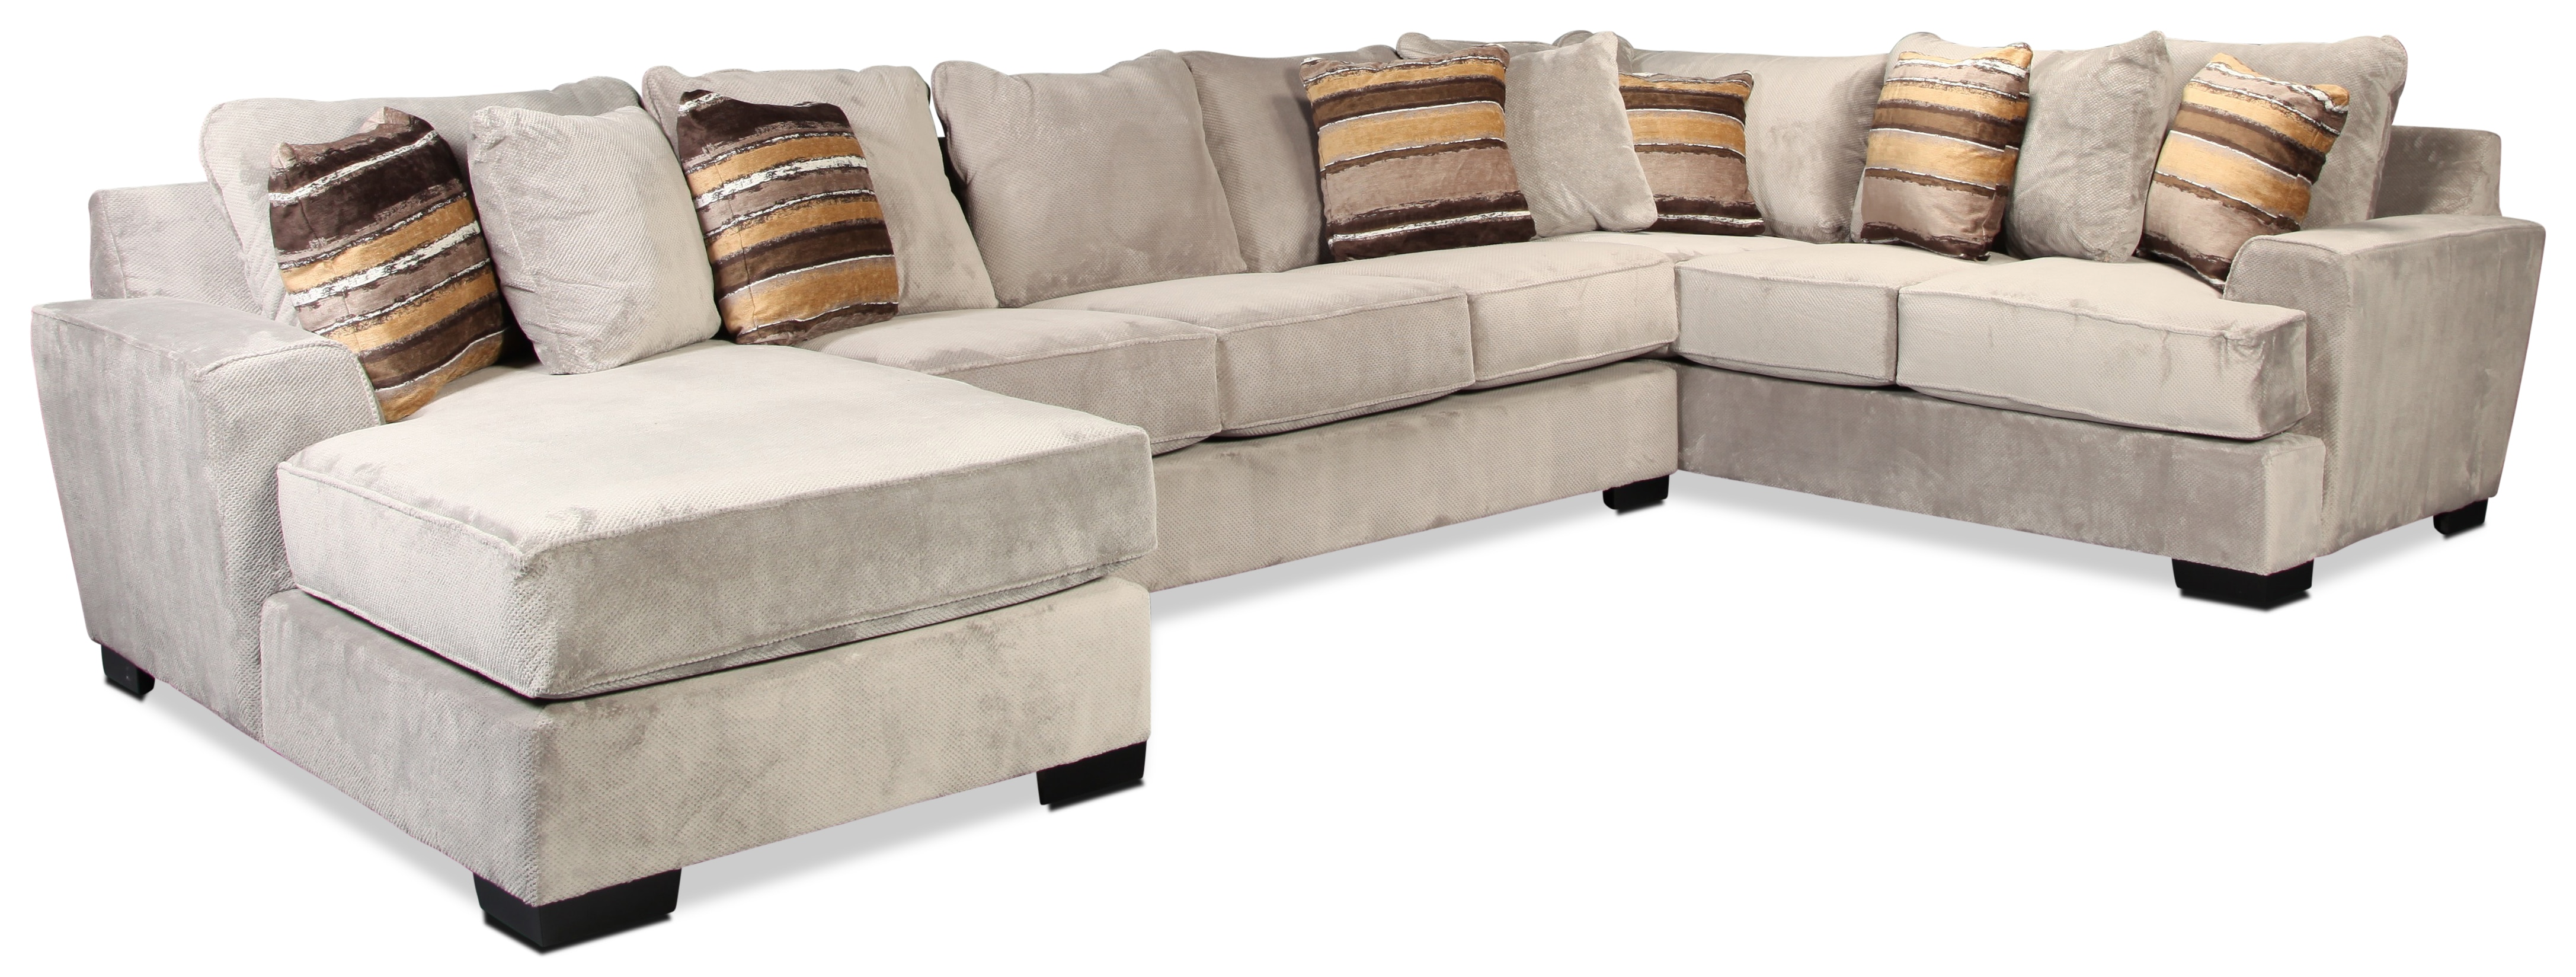 Serendipity 3 Piece Sectional